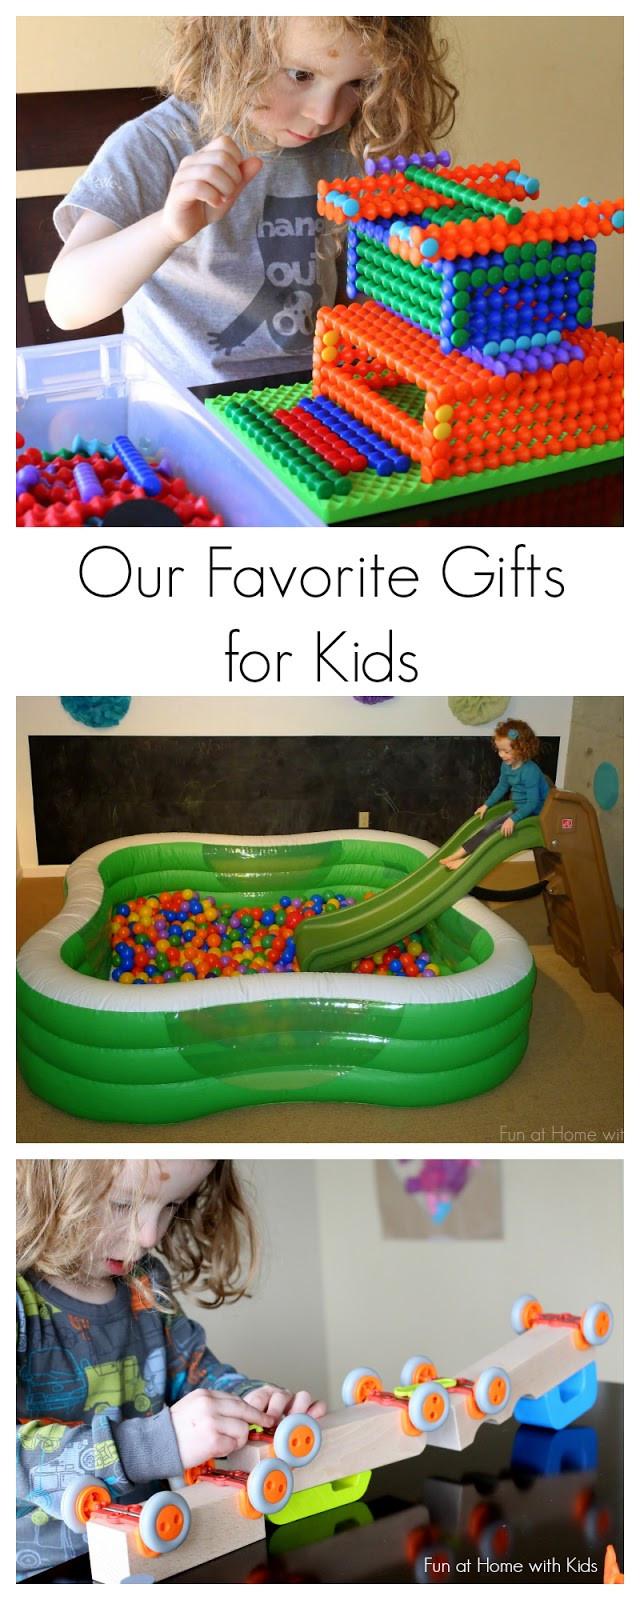 Popular Gifts For Kids  Our 10 Best and Favorite Gift Ideas for Kids